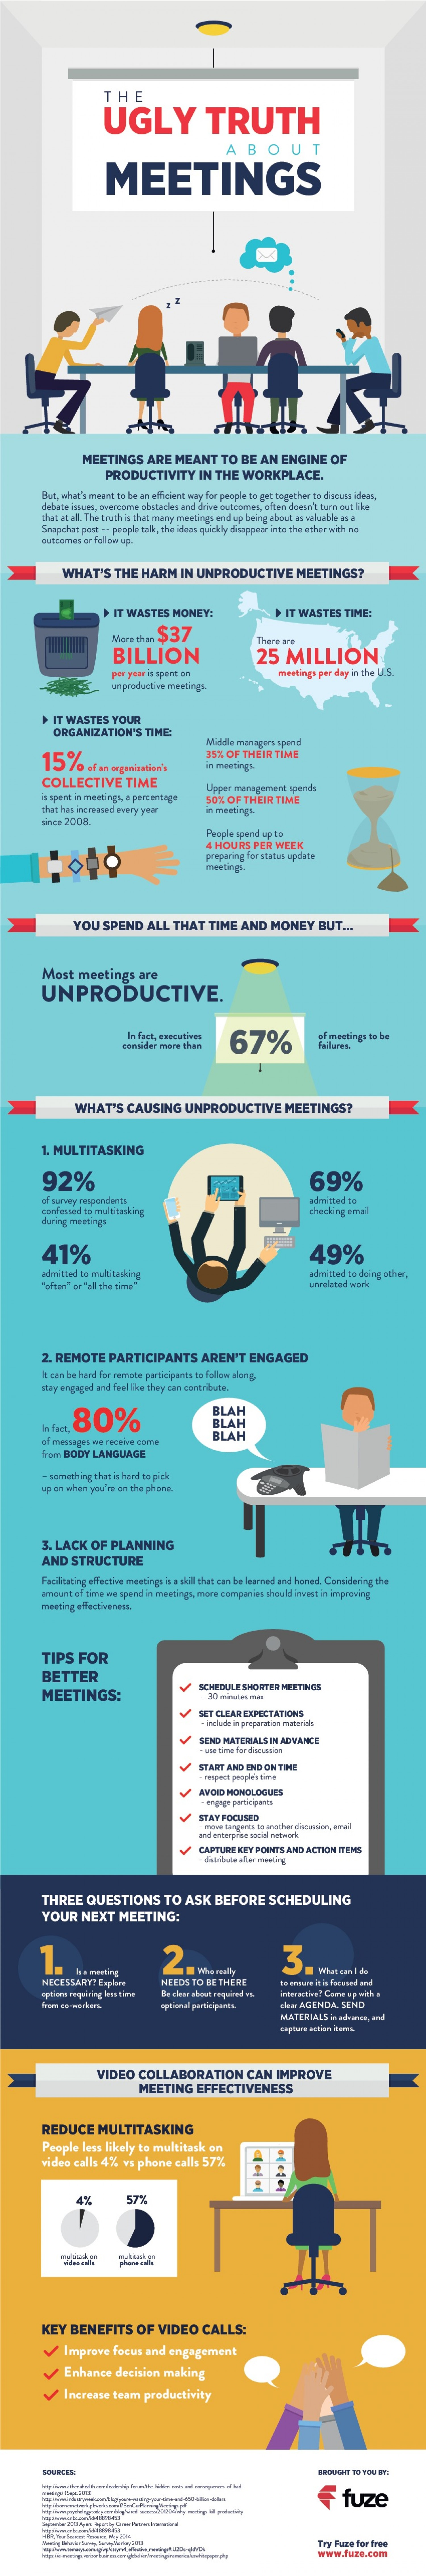 the-ugly-truth-about-meetings_538ca71ea5358_w1500